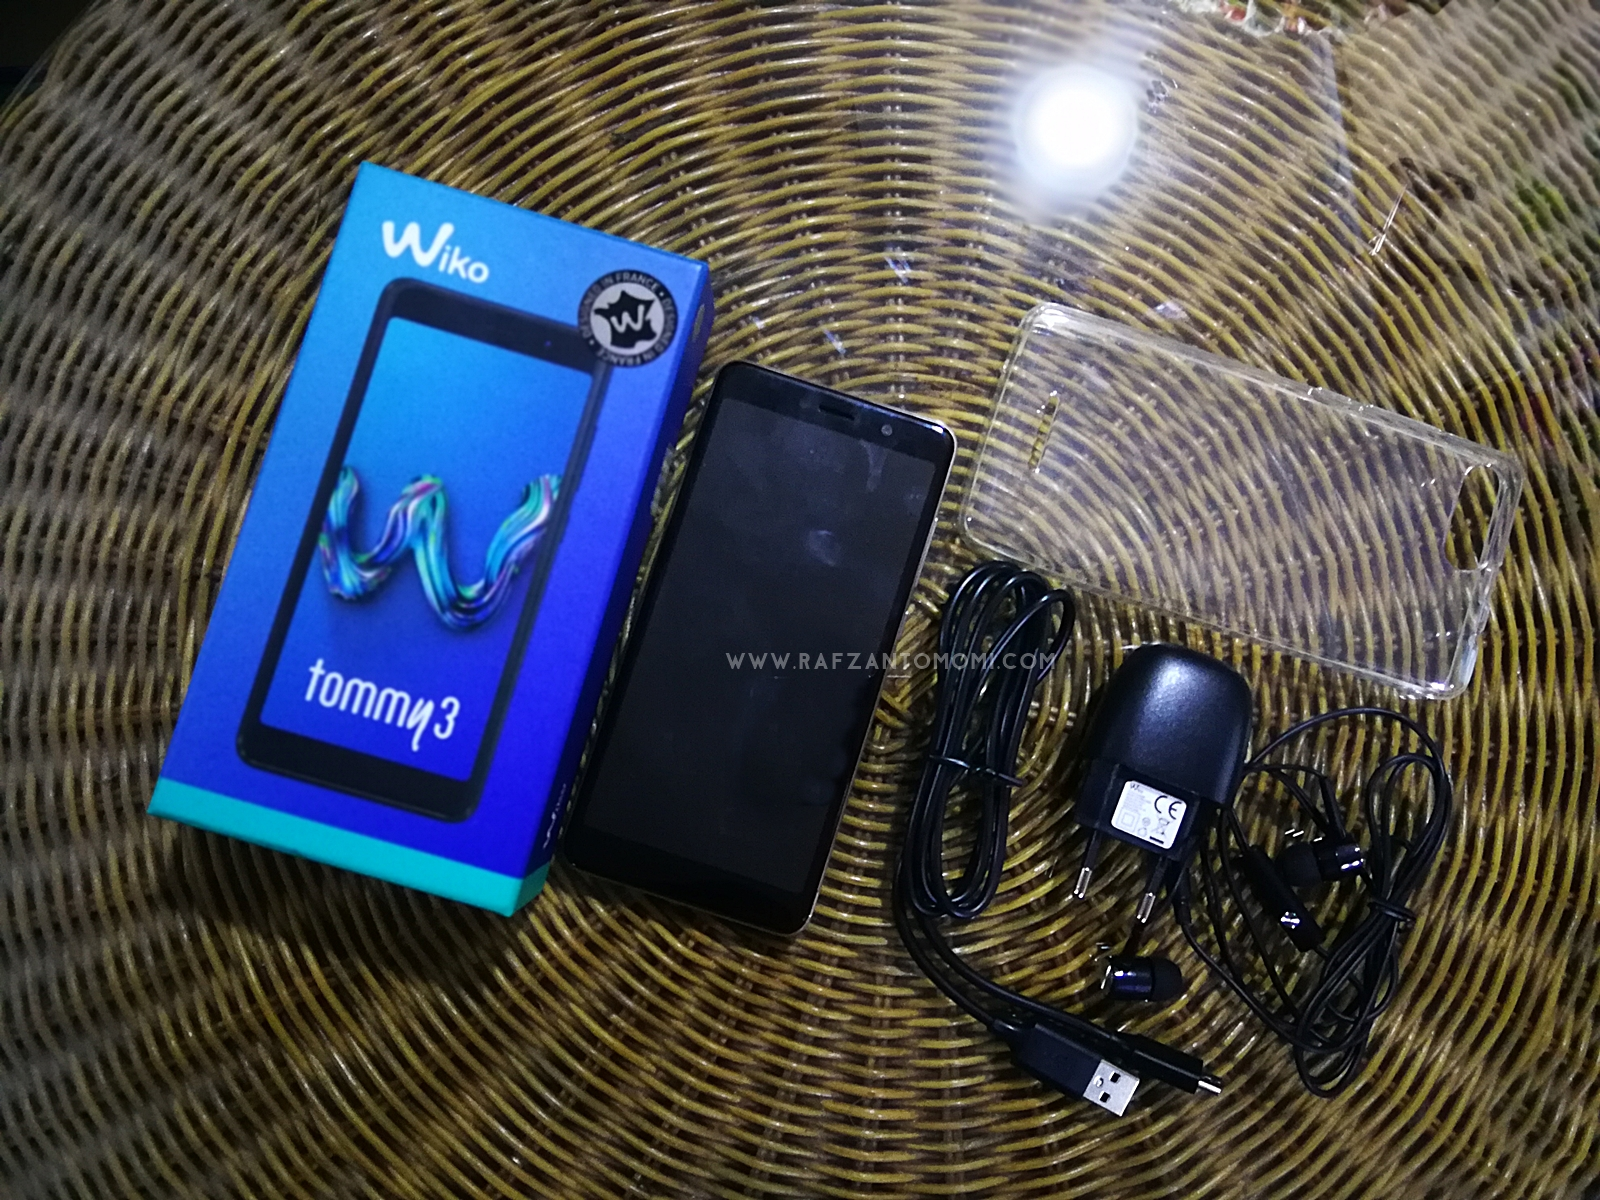 Wiko Tommy 3 - Smartphone Multi-tasking Yang Trendy & Youthful !